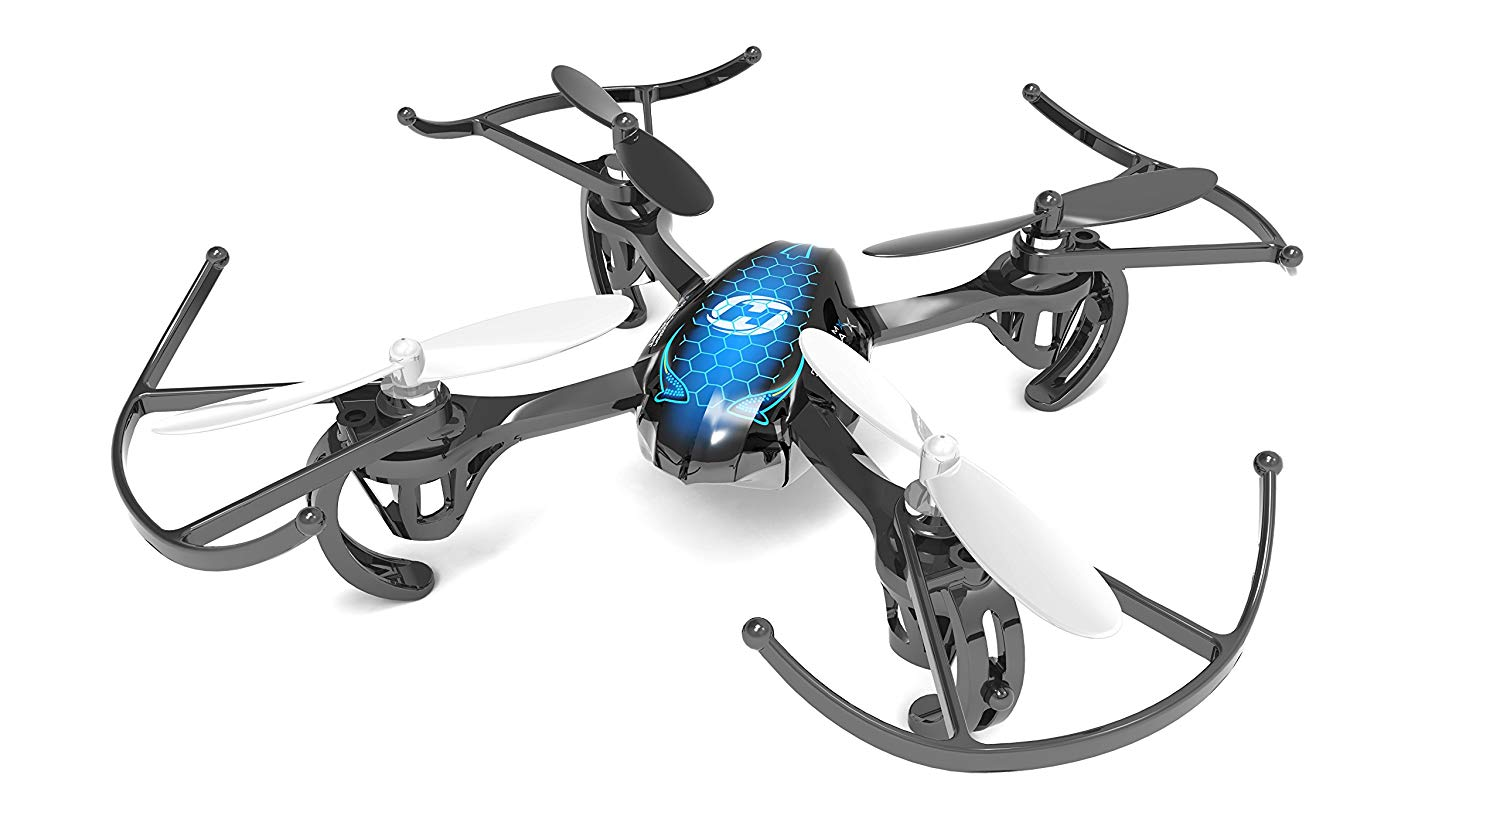 Our Top 3 Favorite Drones Under $50